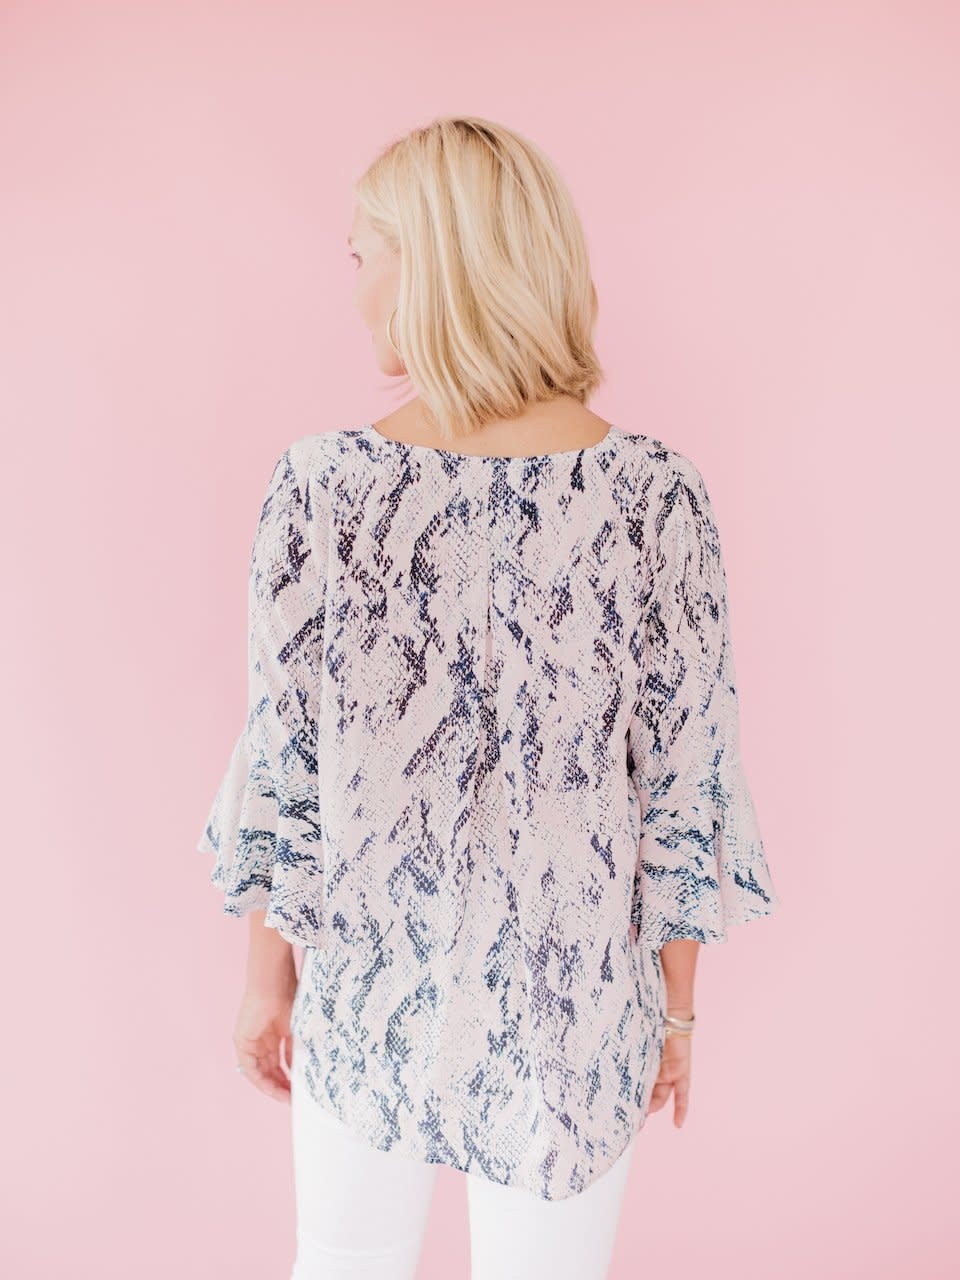 La Roque Park Top in Blush Python